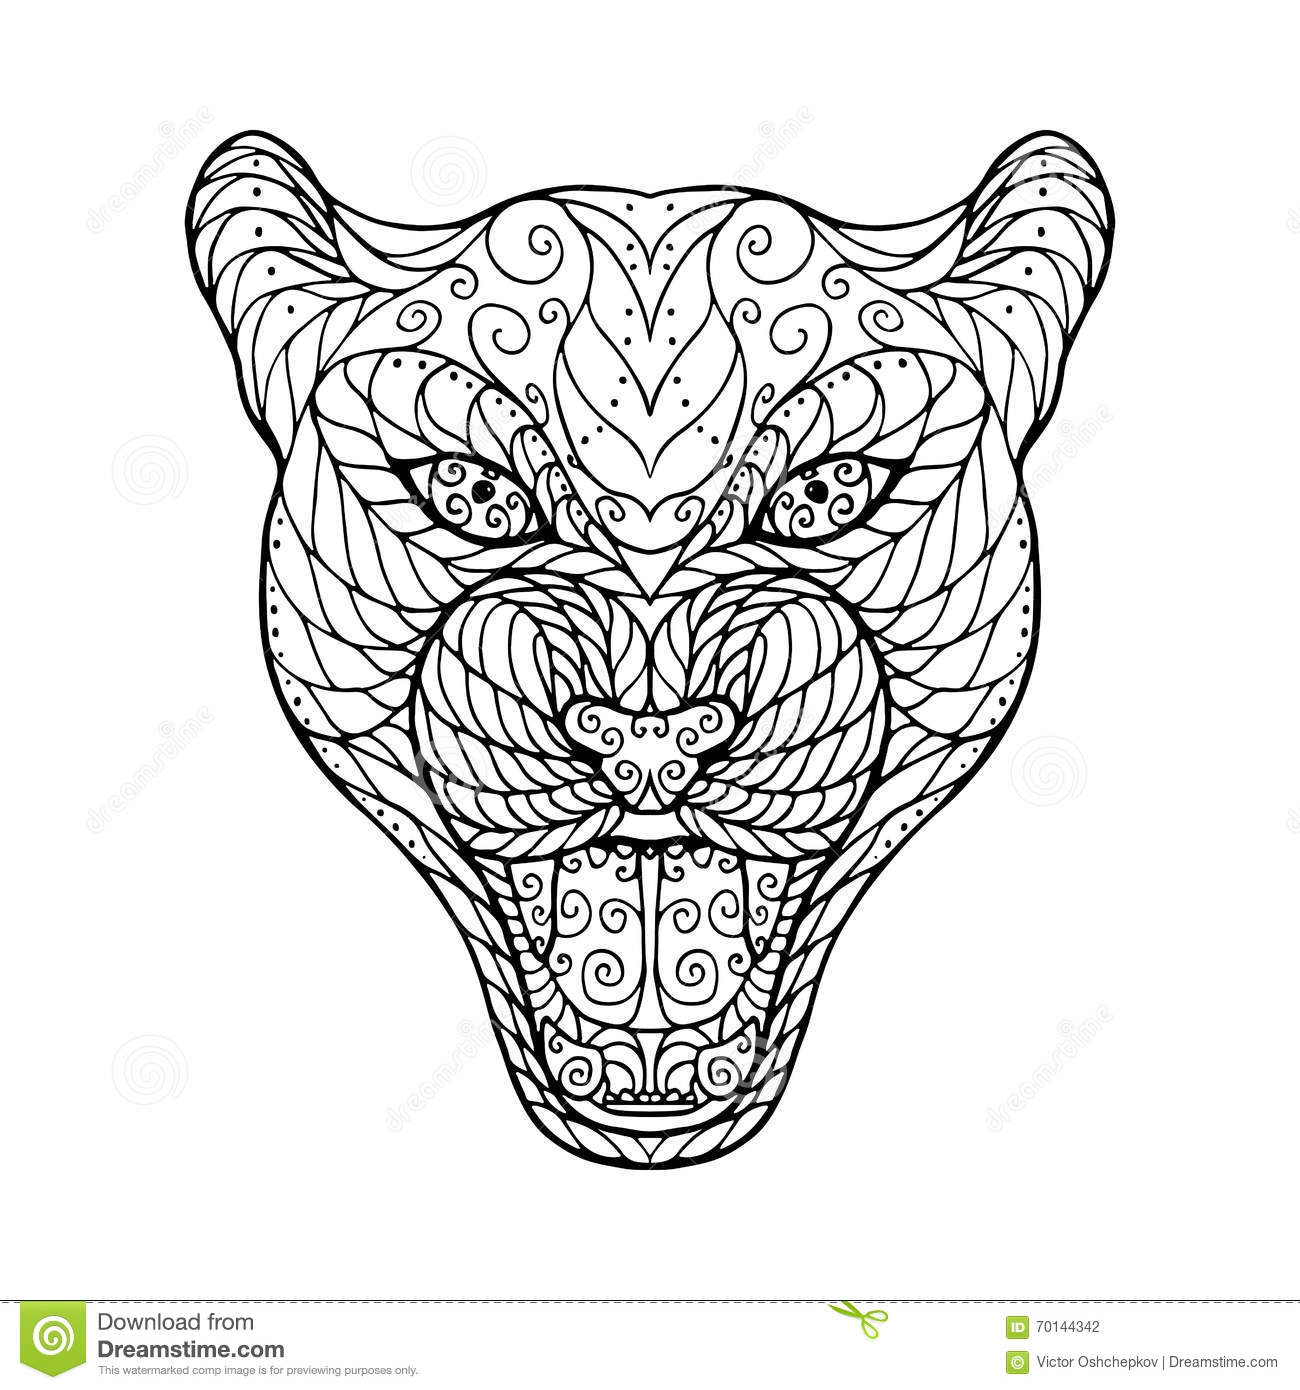 Marvel Black Panther Coloring Pages Download  Free